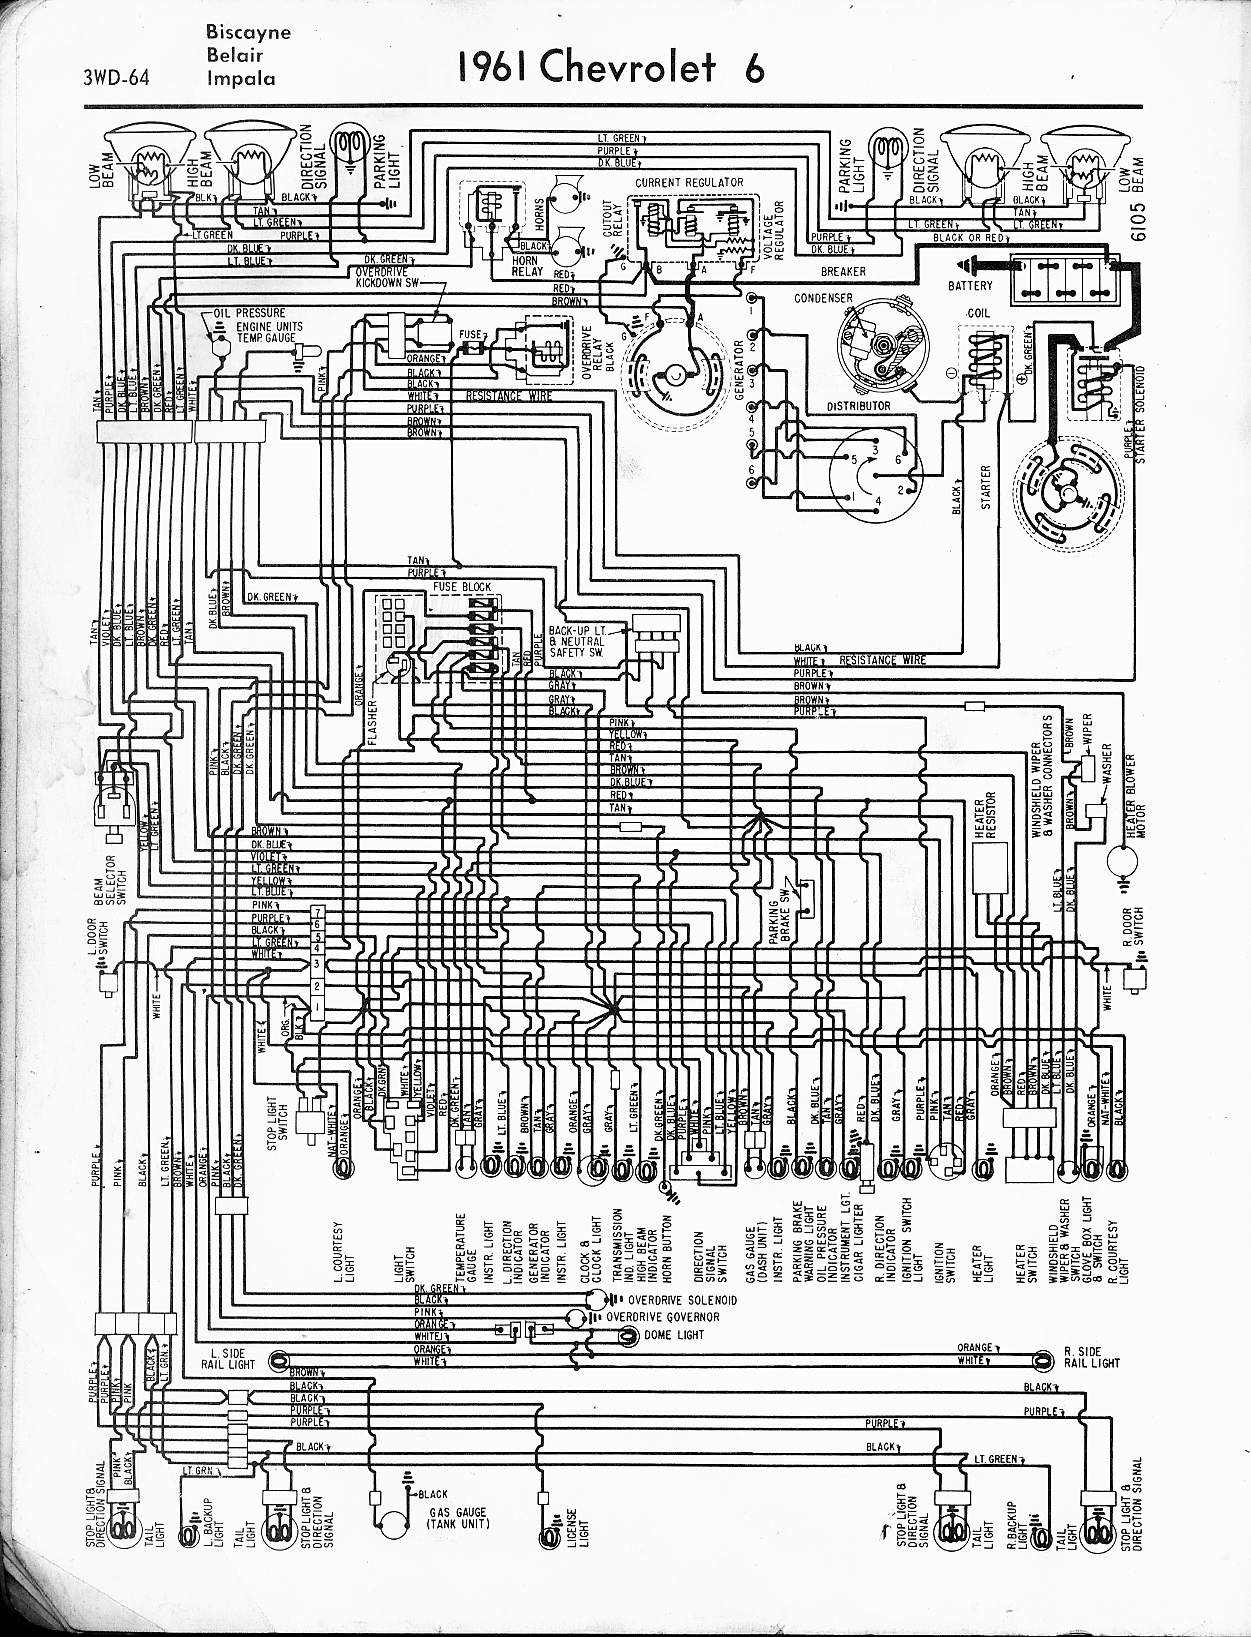 57 - 65 Chevy Wiring Diagrams  Impala Wiring Schematic on